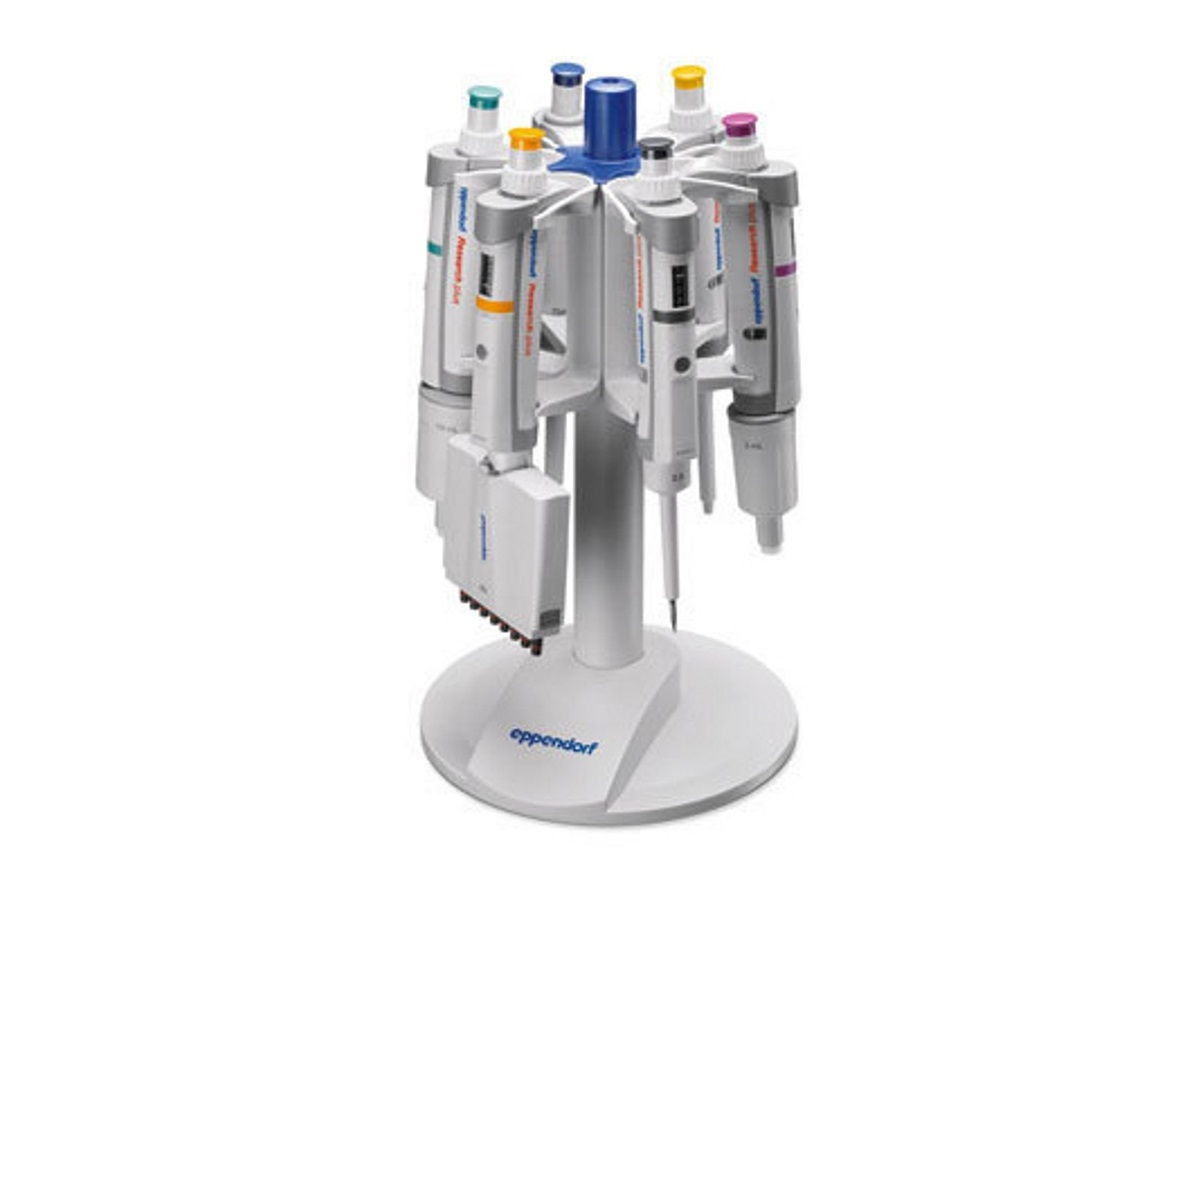 Statywy do pipet Eppendorf